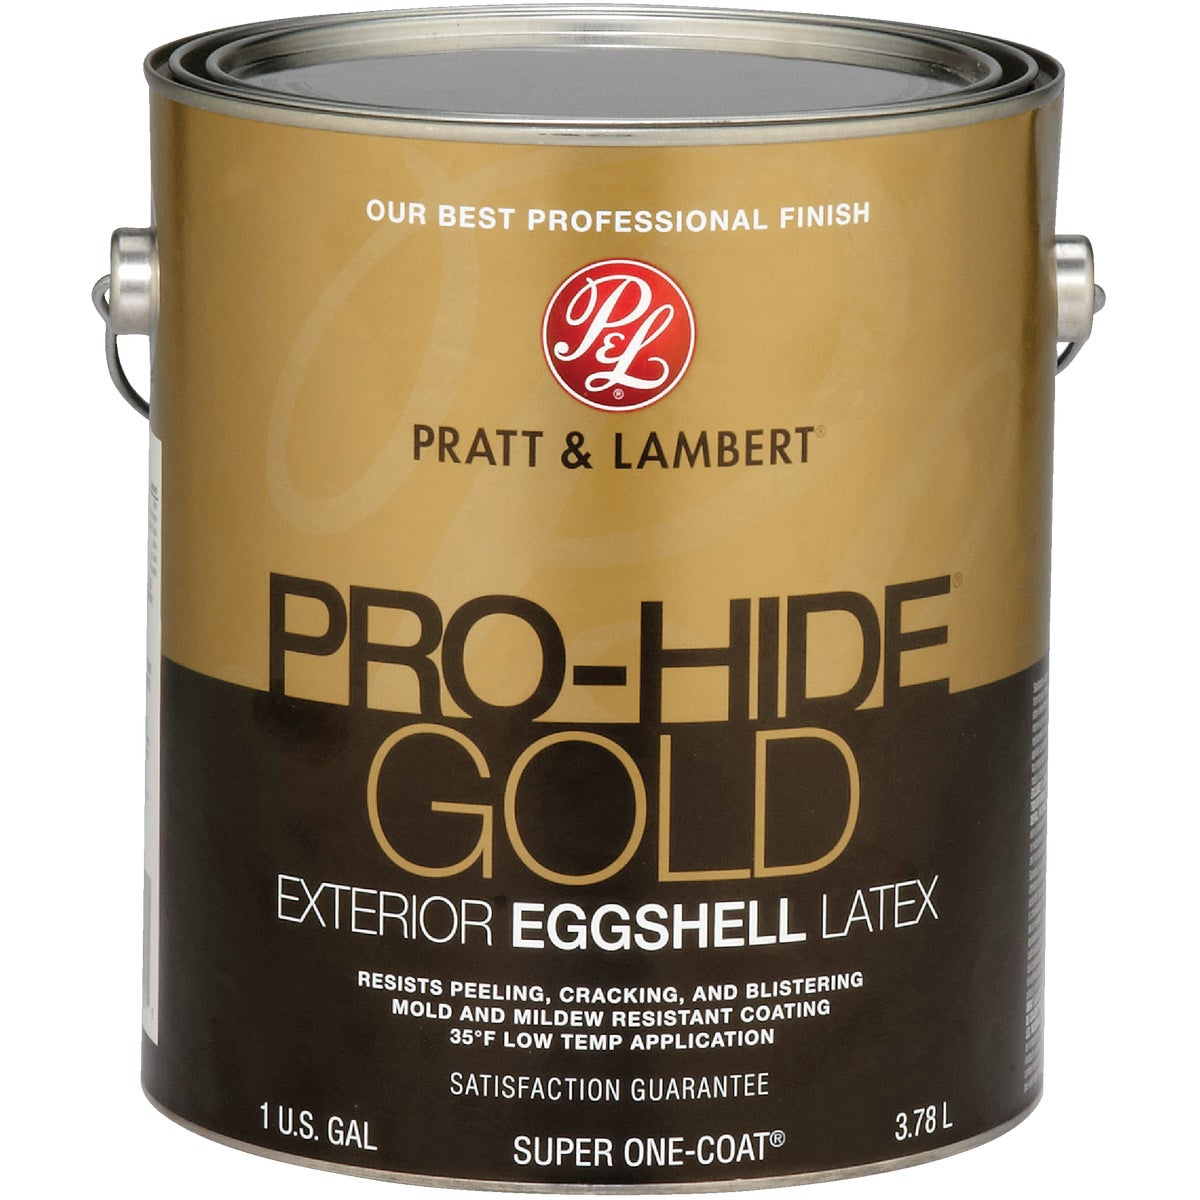 EXT EGG BASE 3 PAINT - 0000Z8593-16 by Do it Best